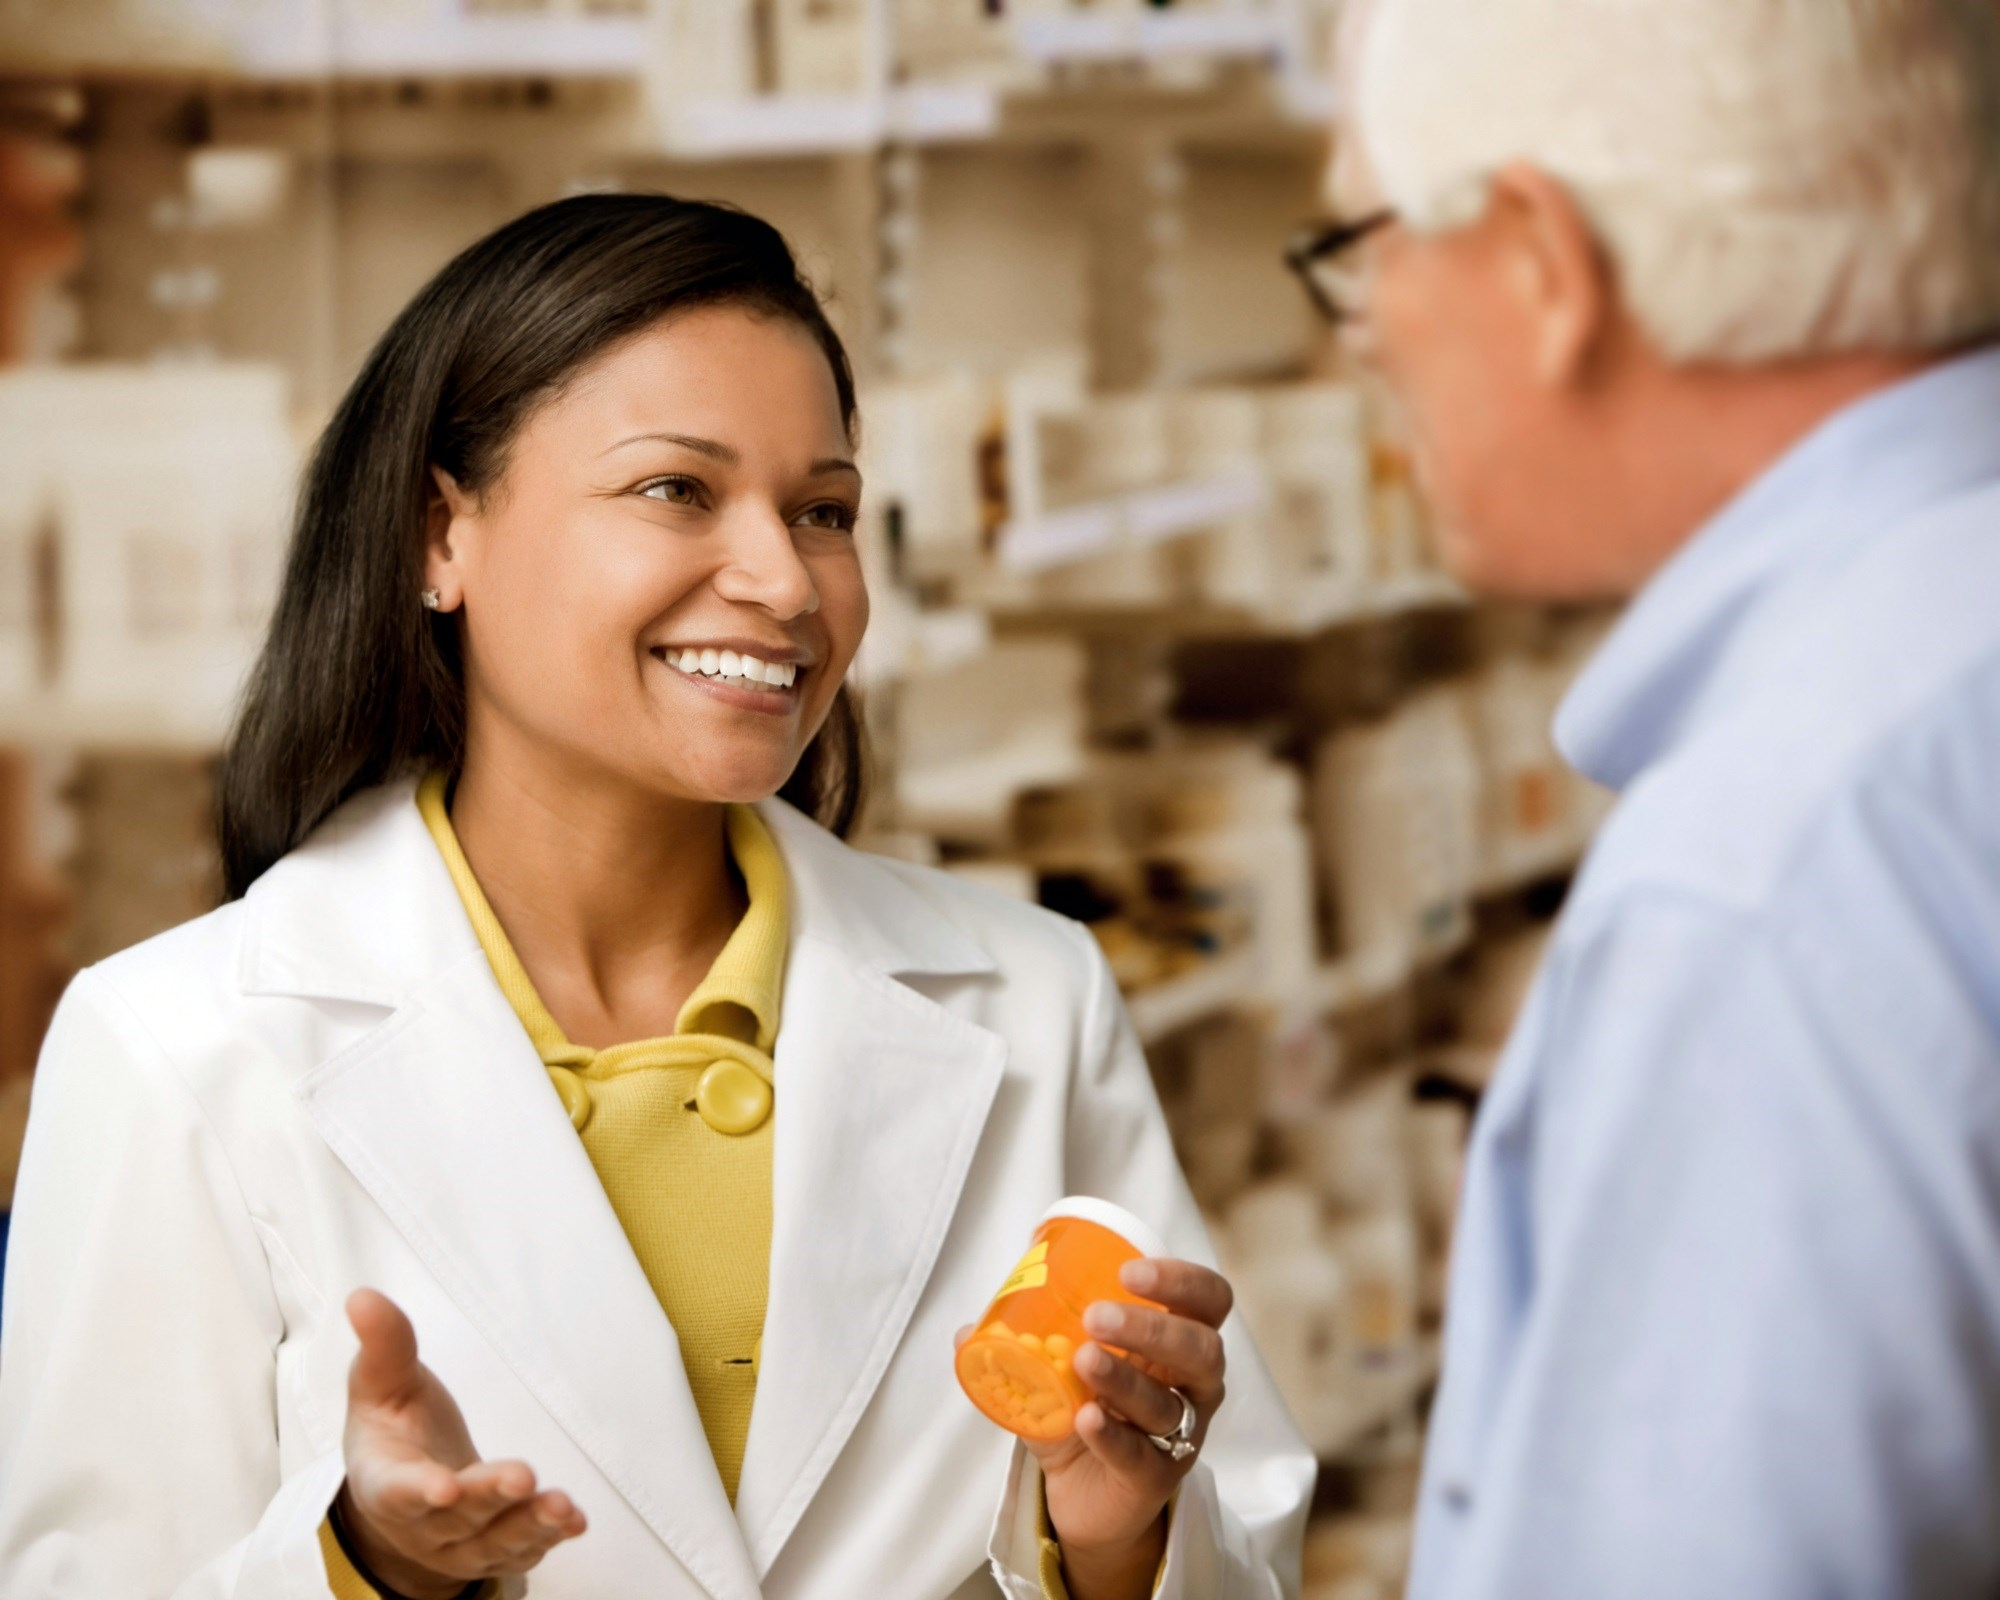 Guide details two types of collaborative care models that involve pharmacists and physicians working together.